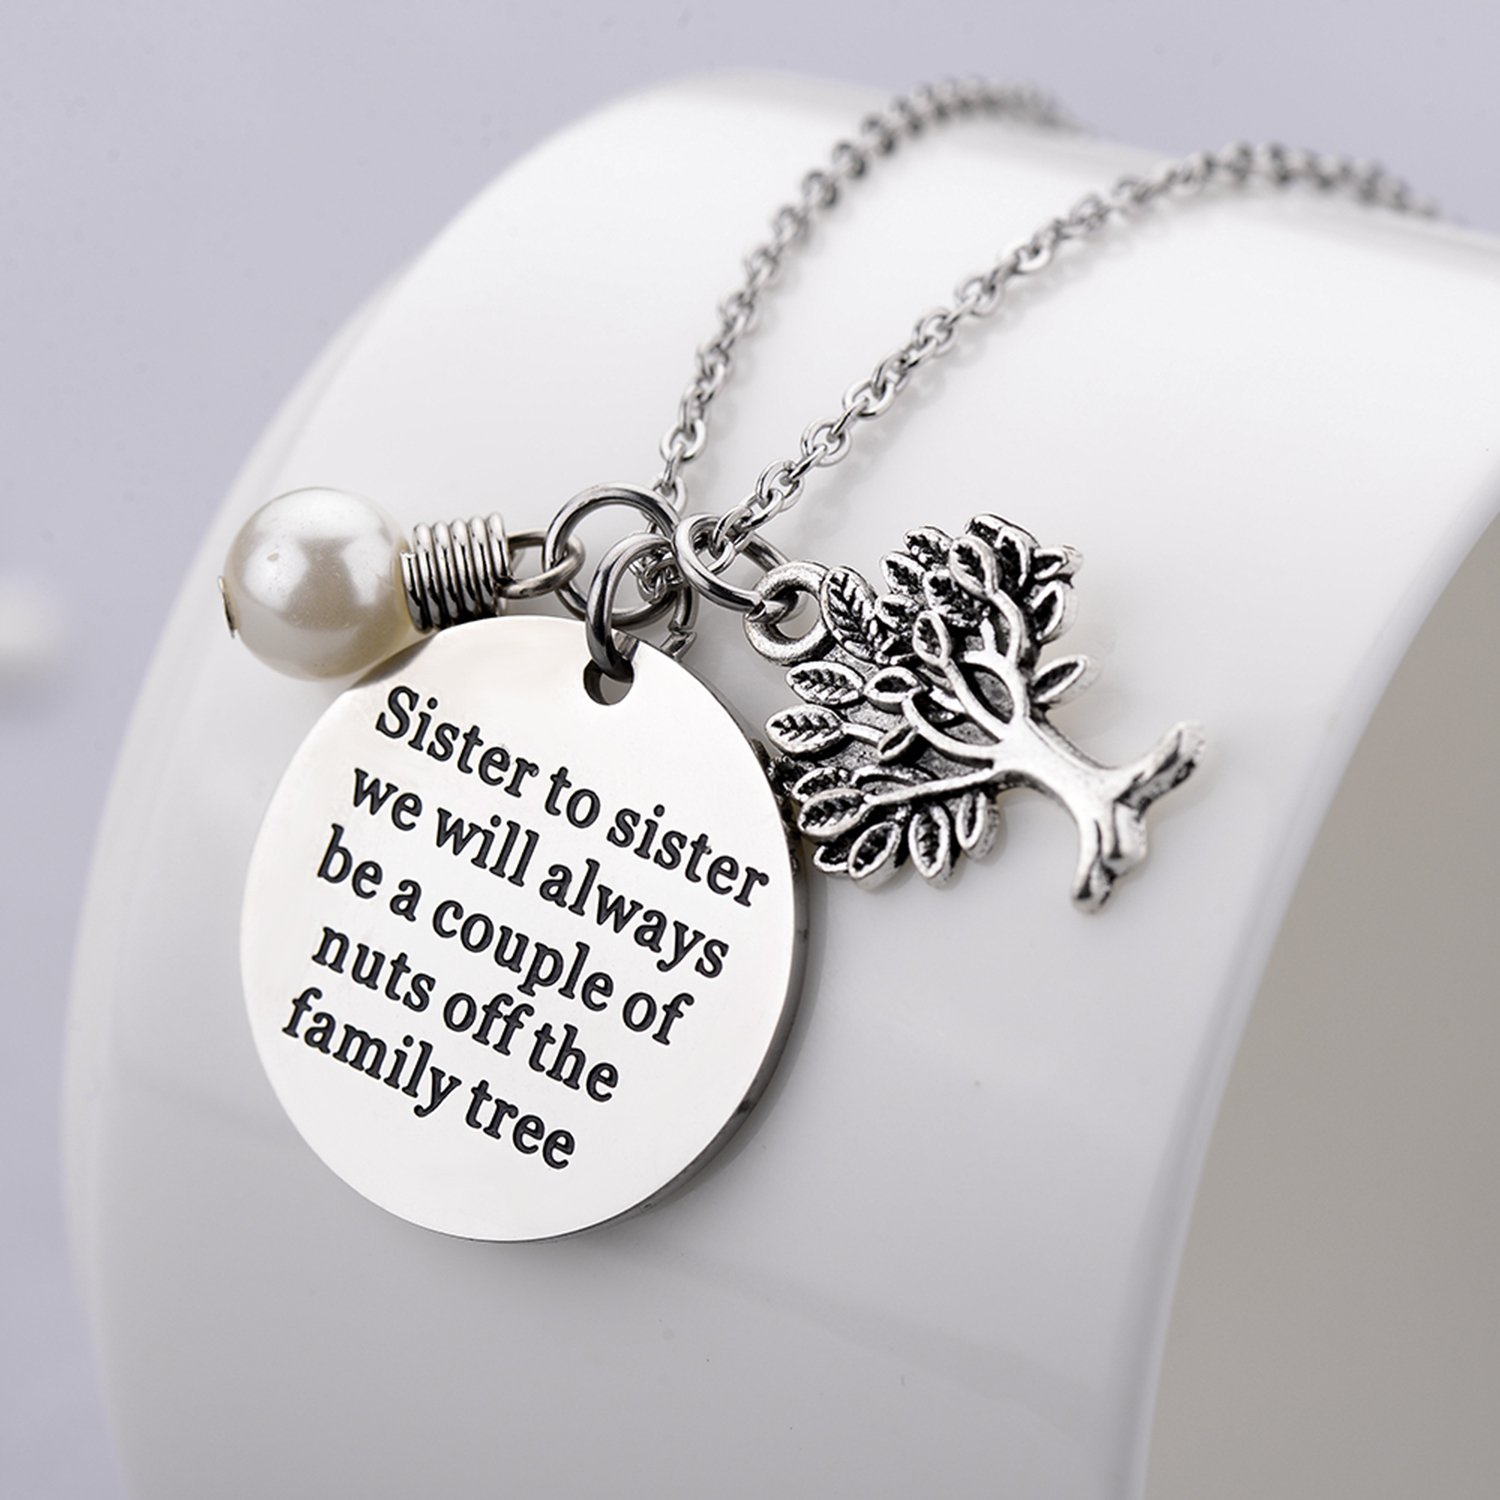 family free over locket heart orders charm queenberry tree love watches necklace product shipping overstock jewelry floating crystals pendant on round